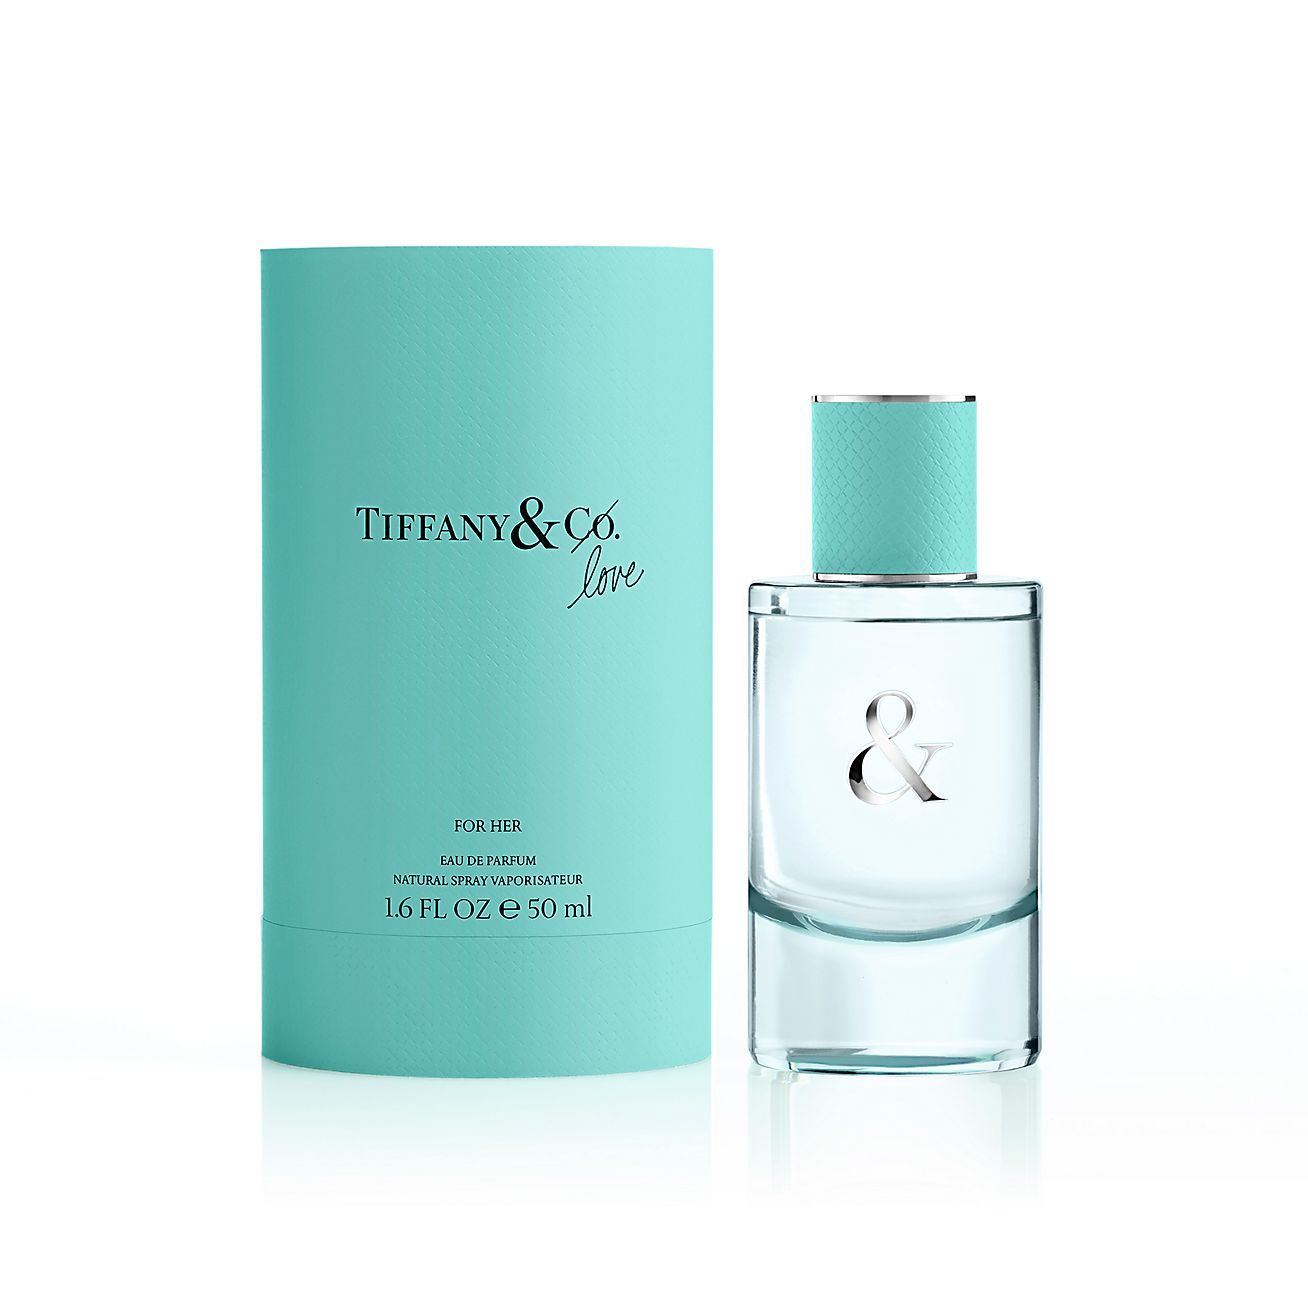 Tiffany Love Eau De Parfum For Her 1 6 Ounces Tiffany Co